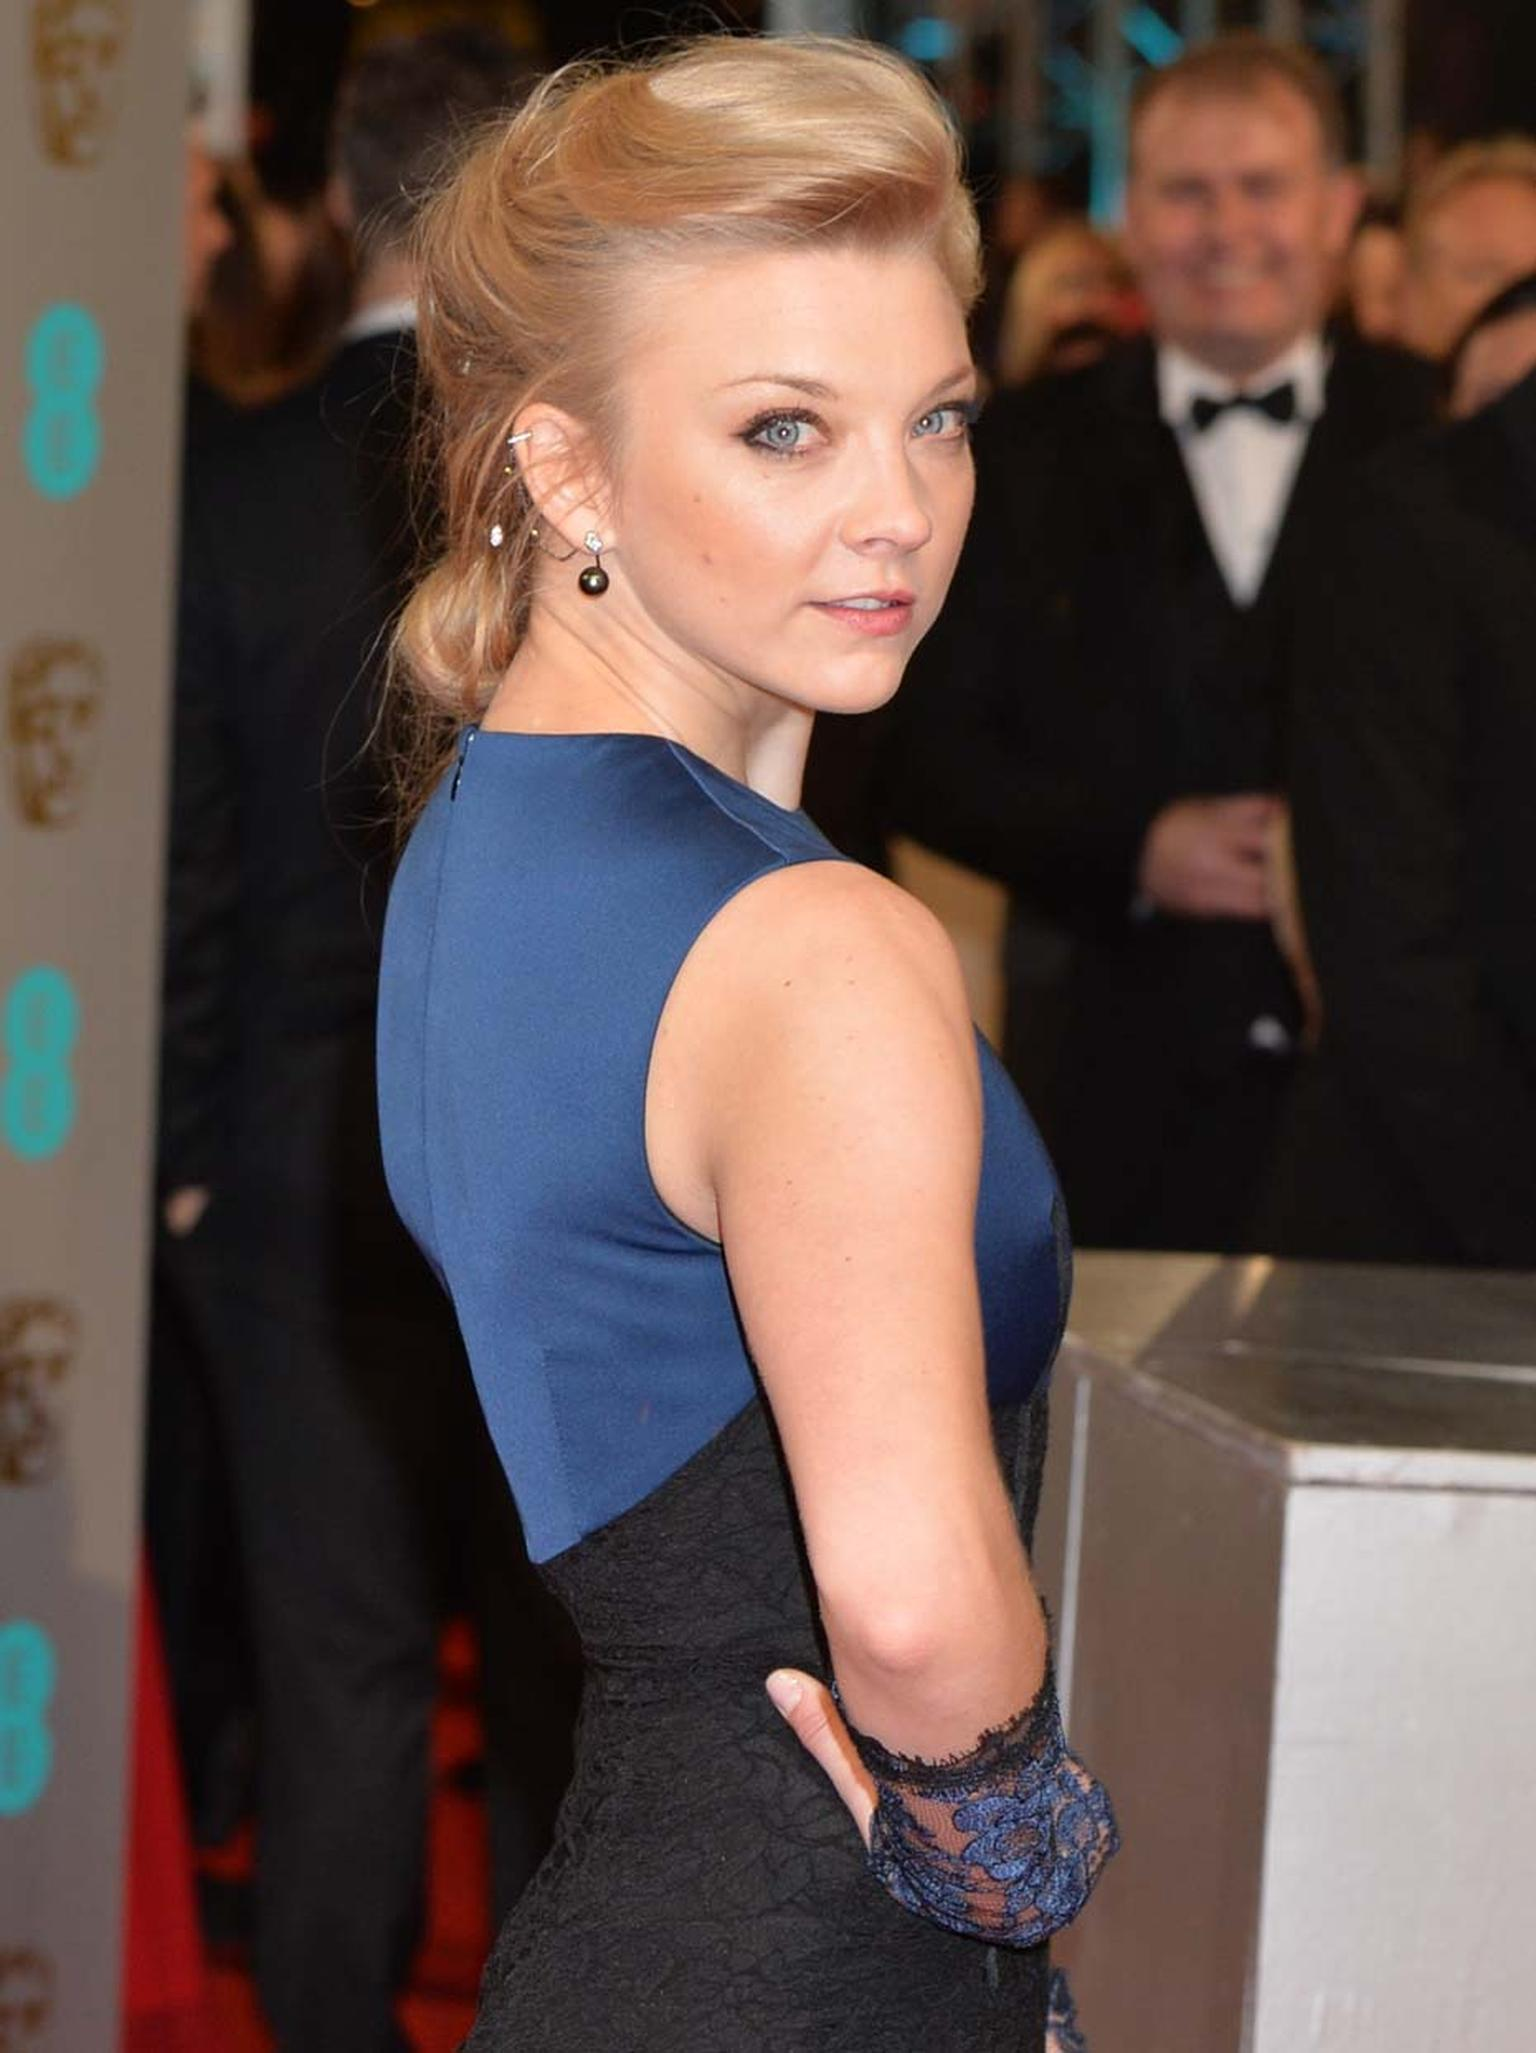 Natalie Dormer wore a YOKO London black gold ear cuff set with diamonds and Tahitian pearls.